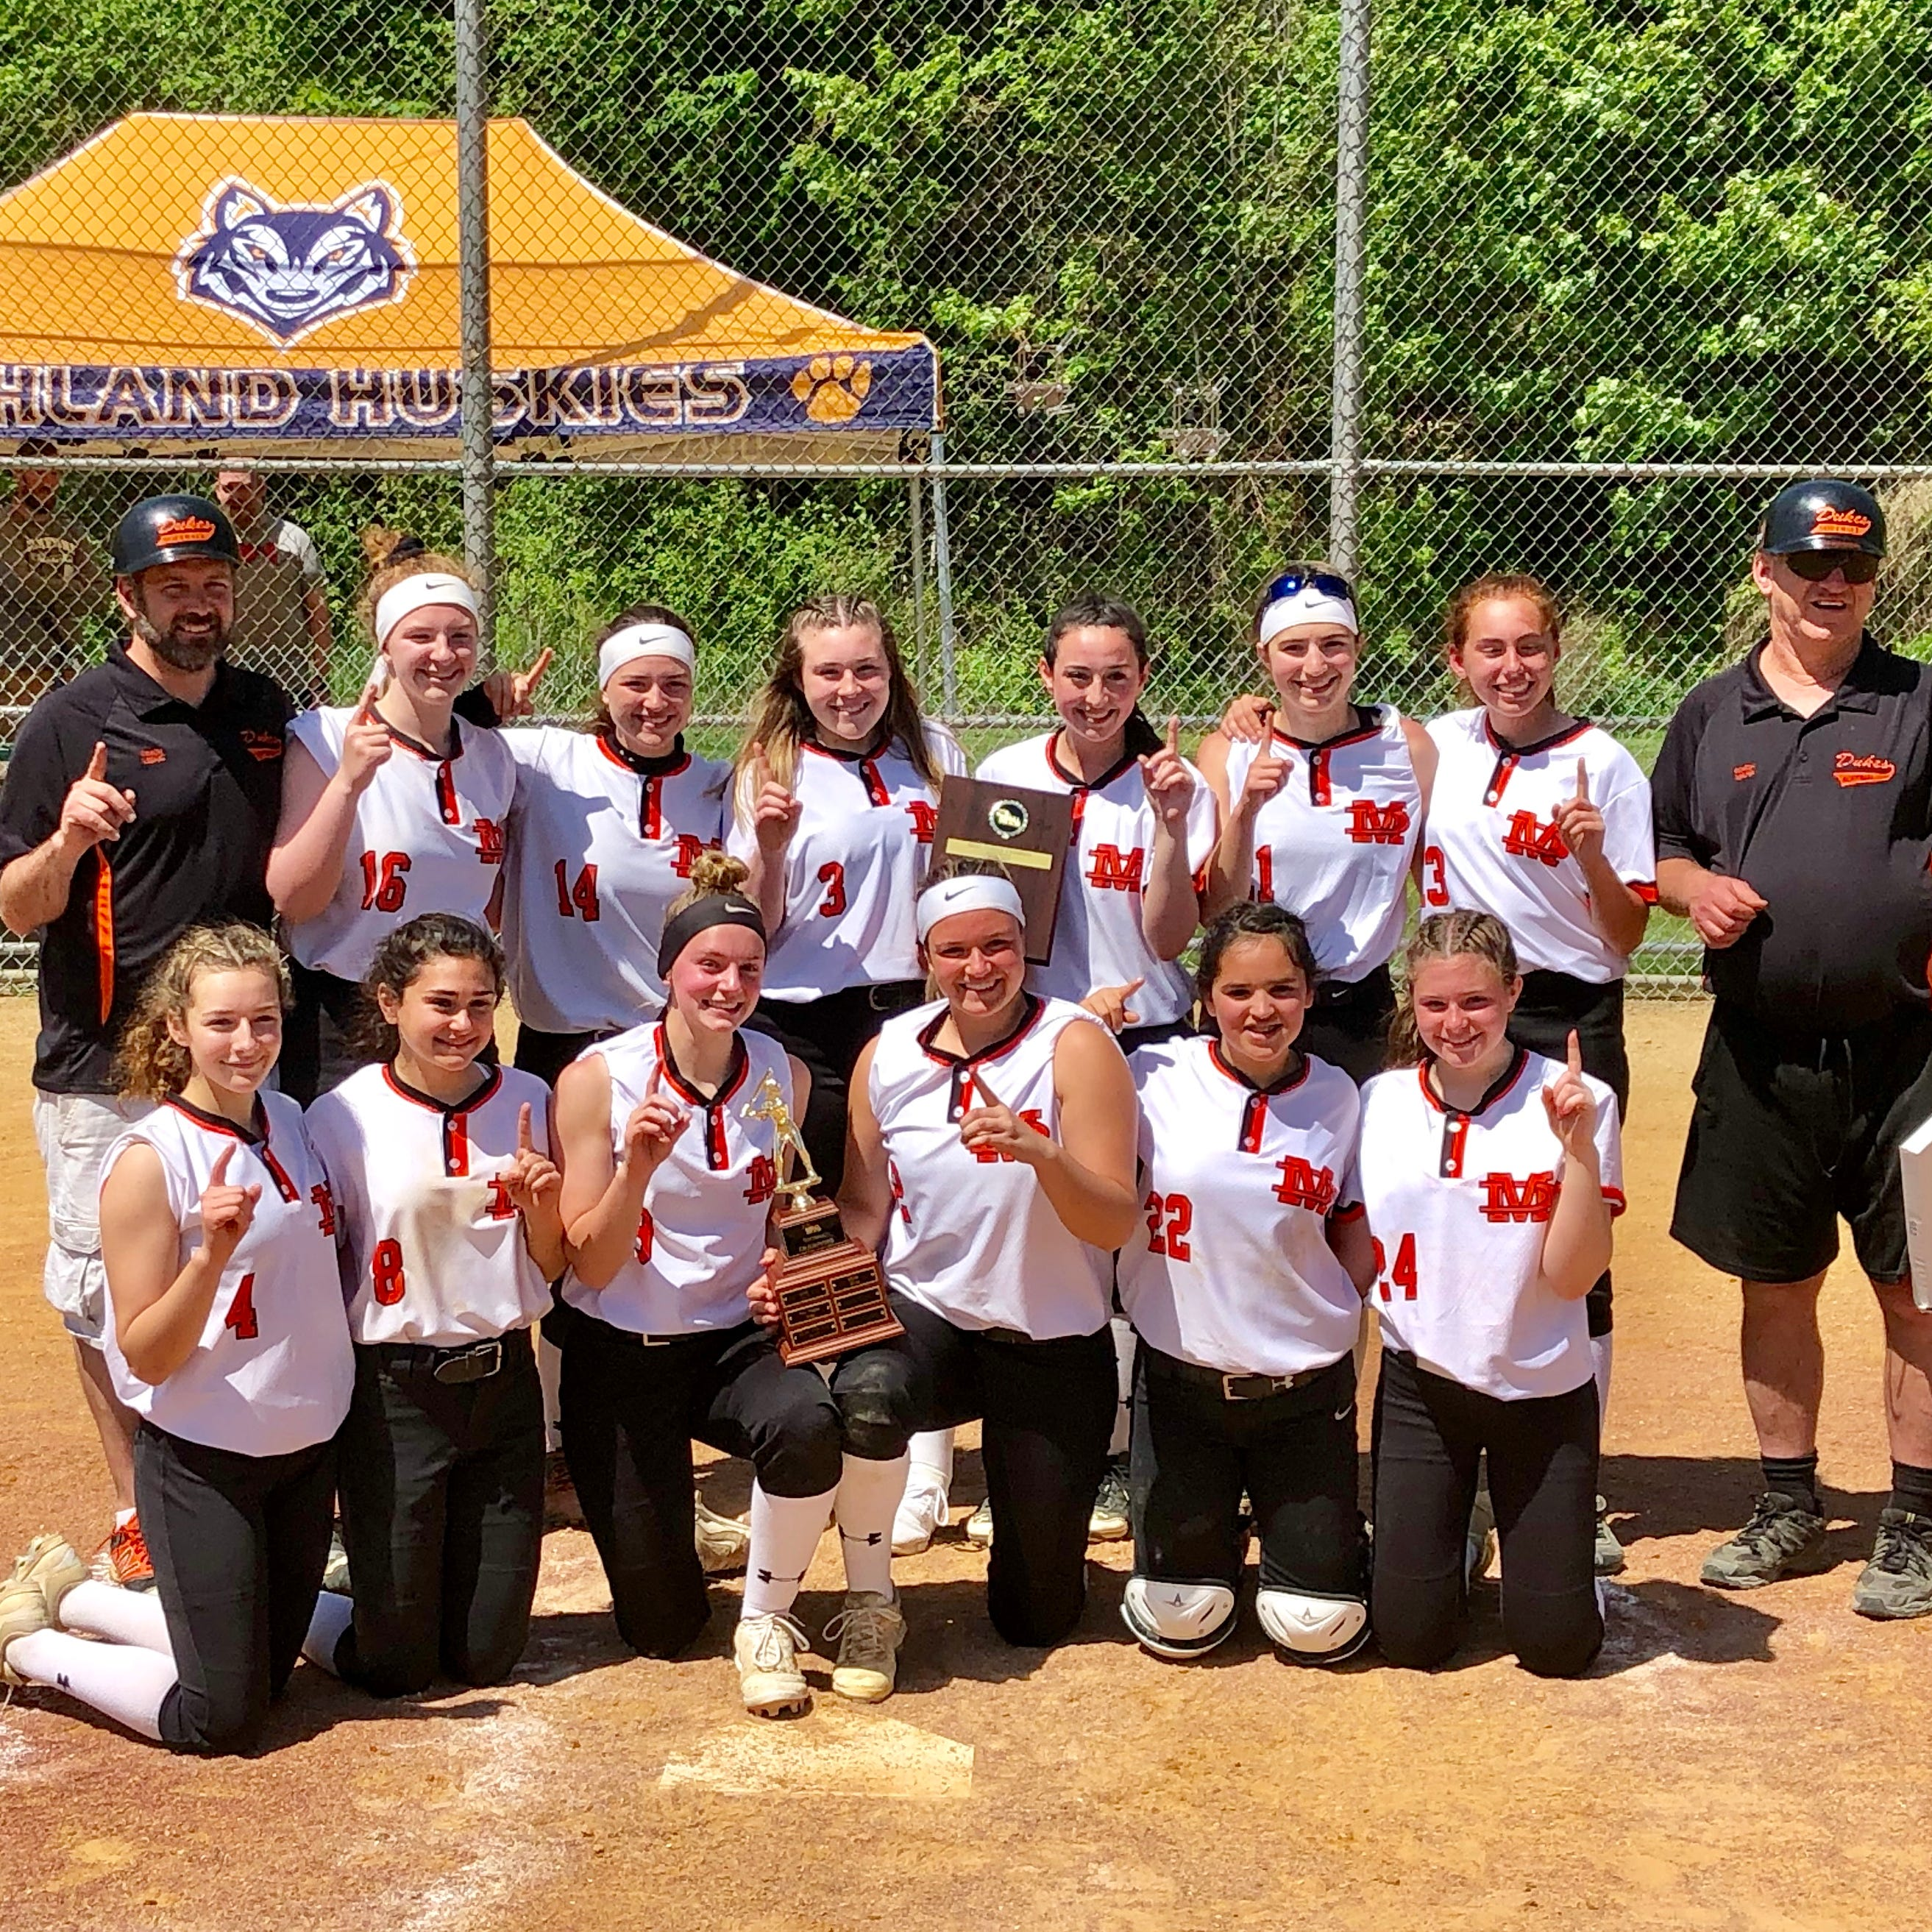 What nerves? Freshman DelSalto leads Marlboro to MHAL softball title